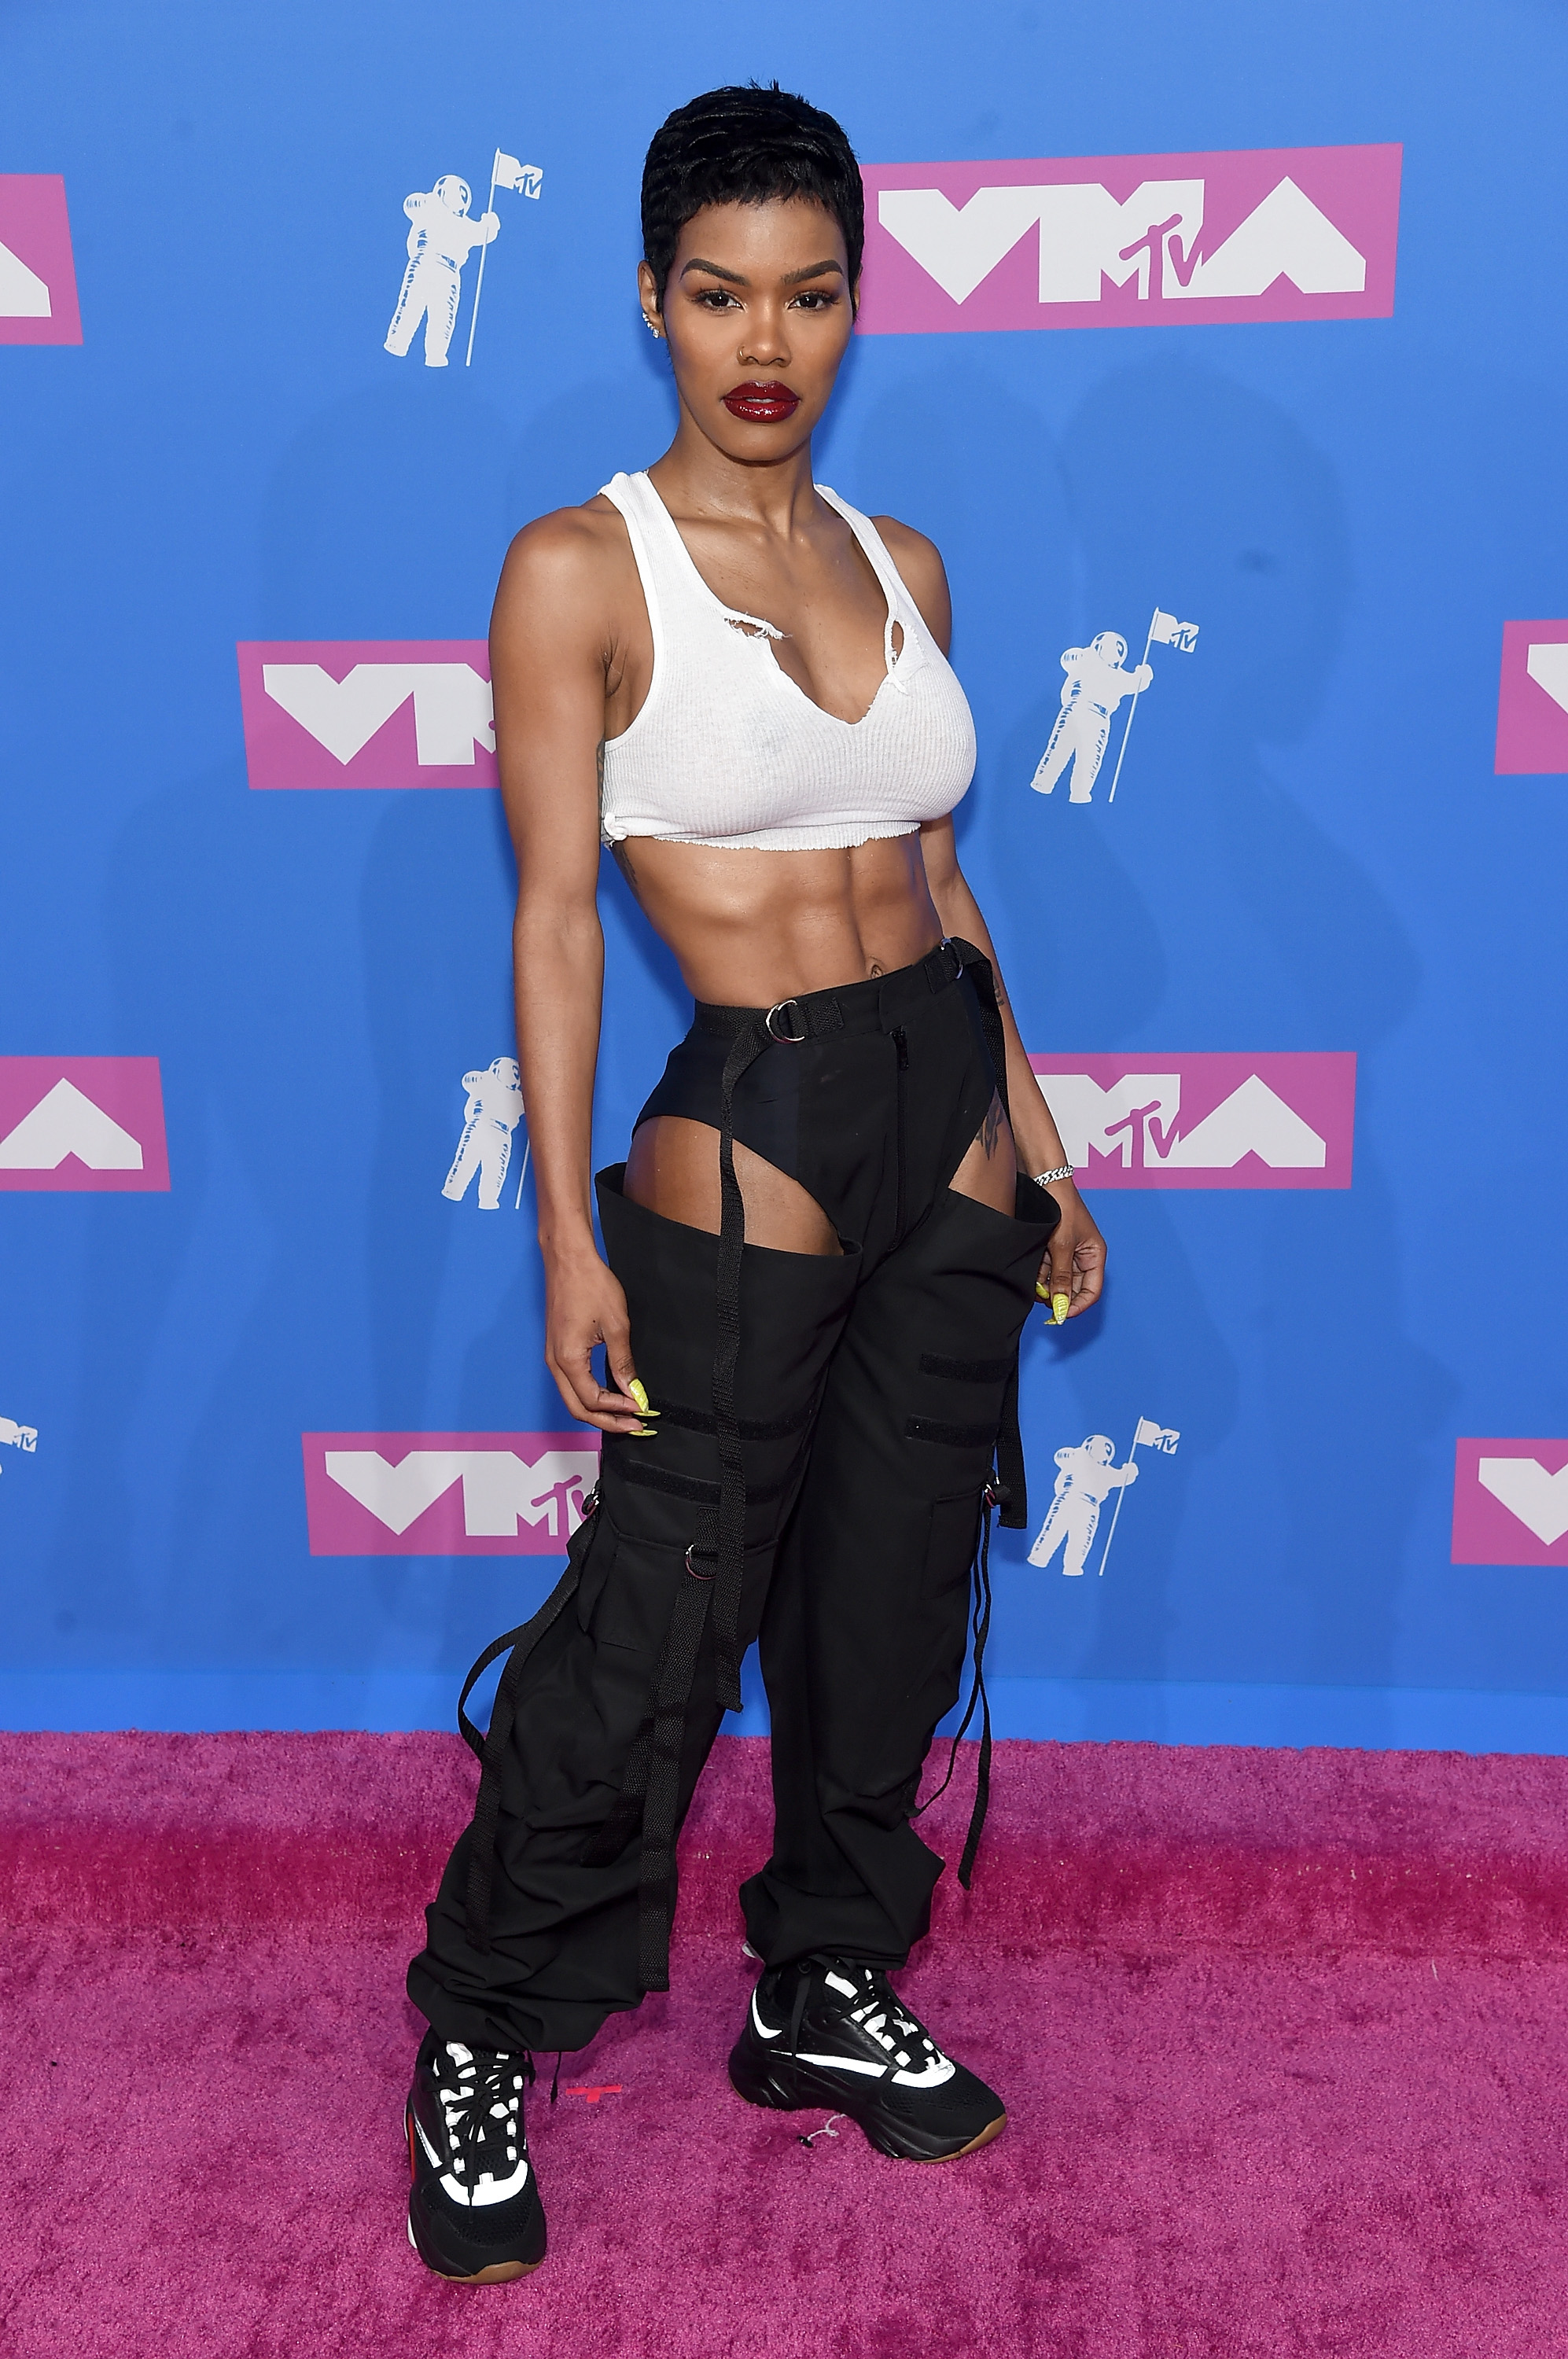 Teyana Taylor attends the 2018 MTV Video Music Awards at Radio City Music Hall on August 20, 2018 in New York City.